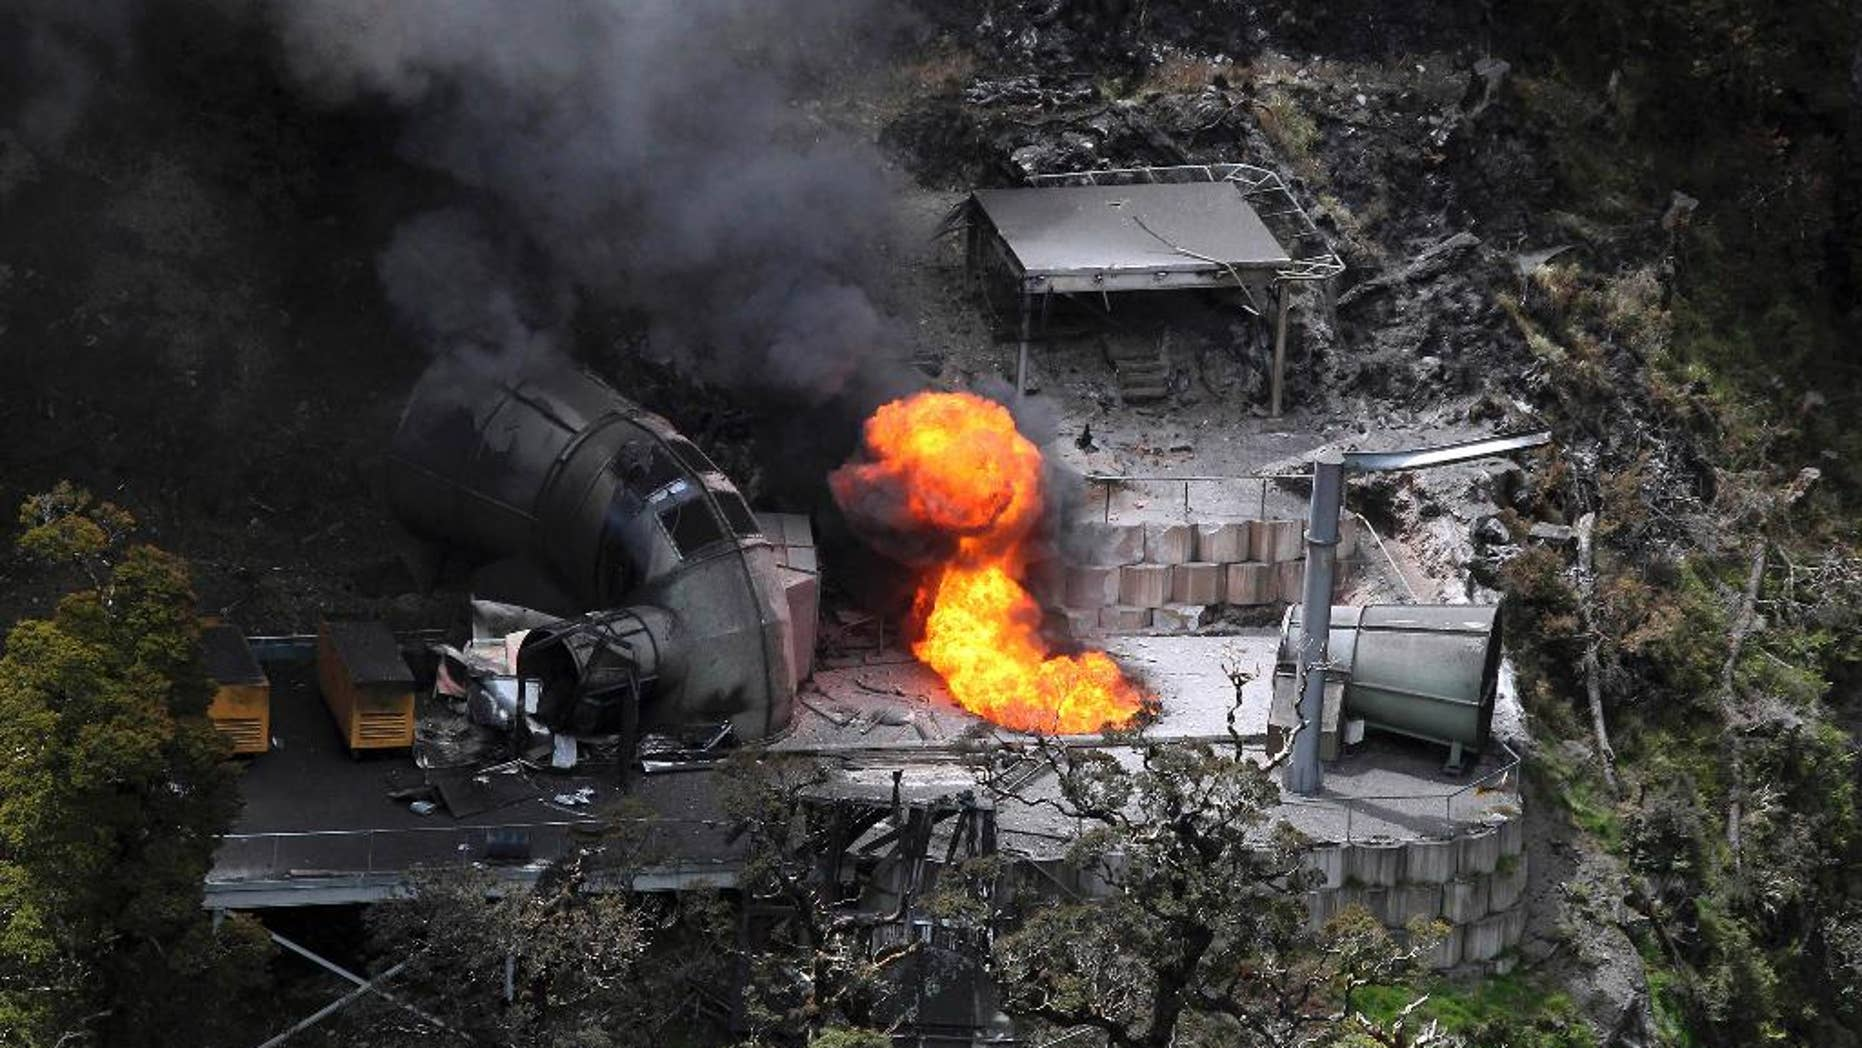 FILE - In this Nov. 30, 2010 file photo, flames burn from a ventilation shaft above the Pike River mine which has fatally trapped 29 miners and contractors in Greymouth, New Zealand. The owners of a New Zealand coal mine where the bodies of 29 workers remain entombed after a methane-fueled explosion four years ago said Thursday, Nov. 6, 2014 they won't go back into the mine because it remains too dangerous. (AP Photo/NZPA, Iain McGregor, File)  NEW ZEALAND OUT